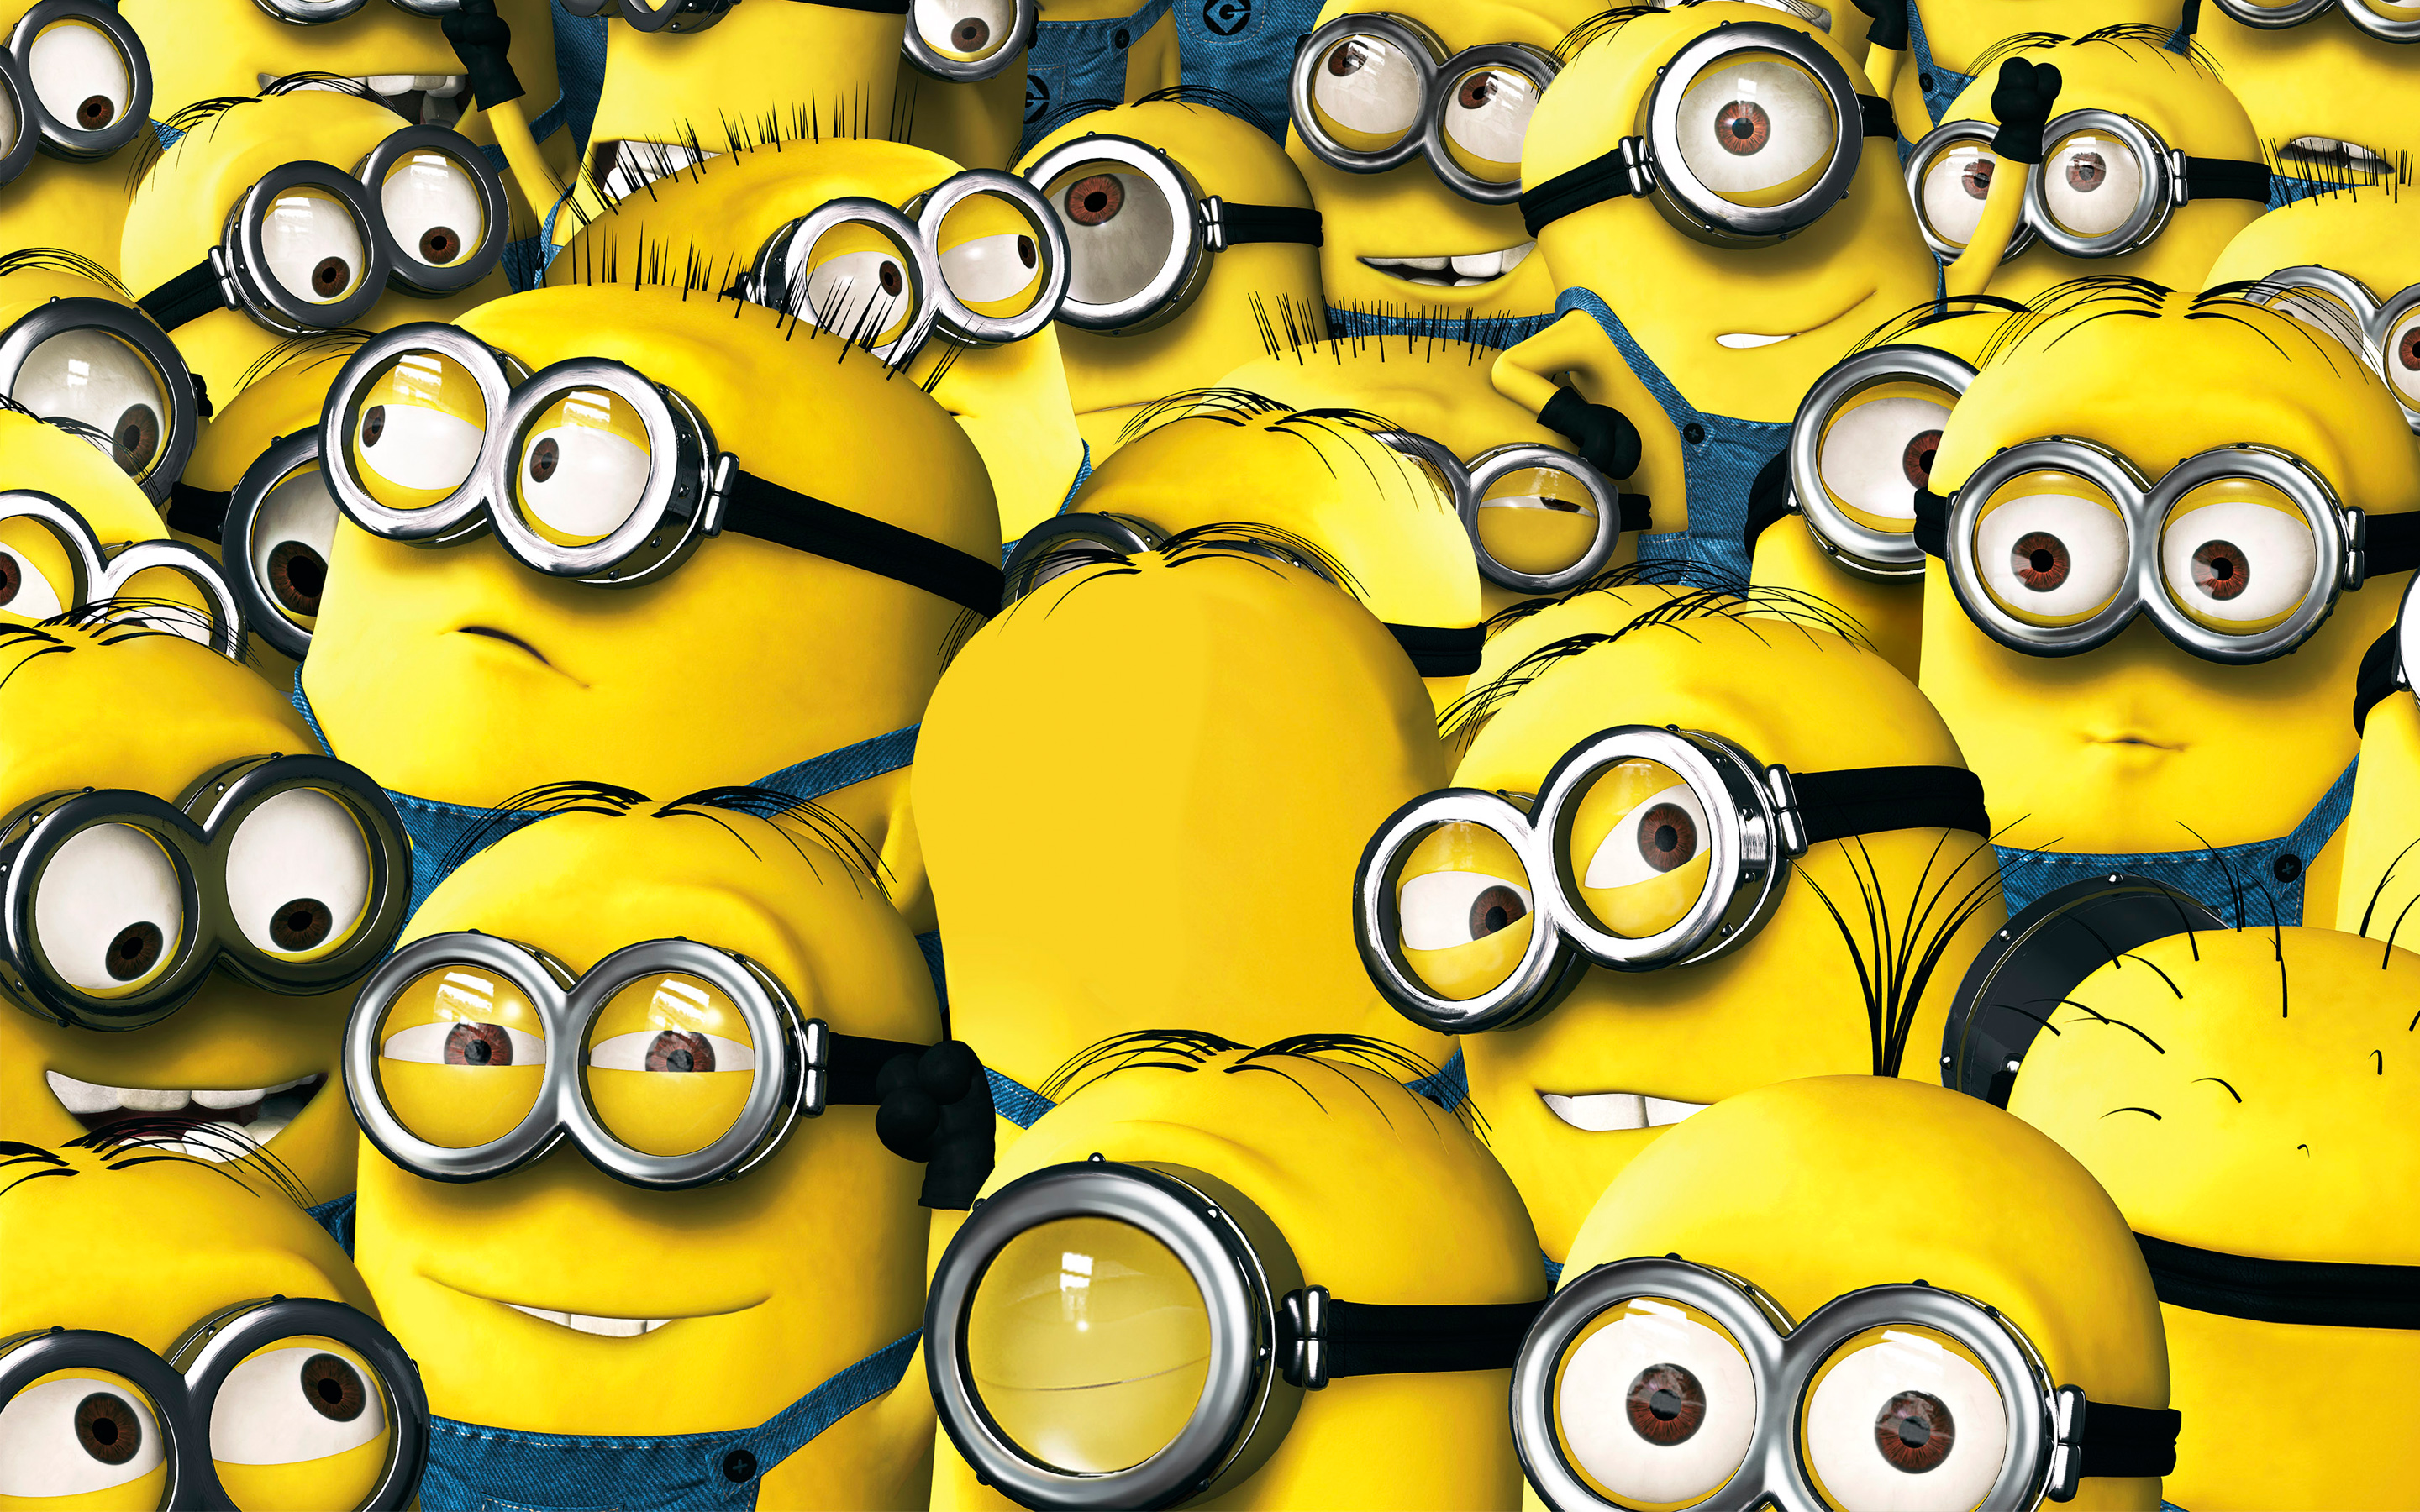 Despicable Me Minions 1249.34 Kb